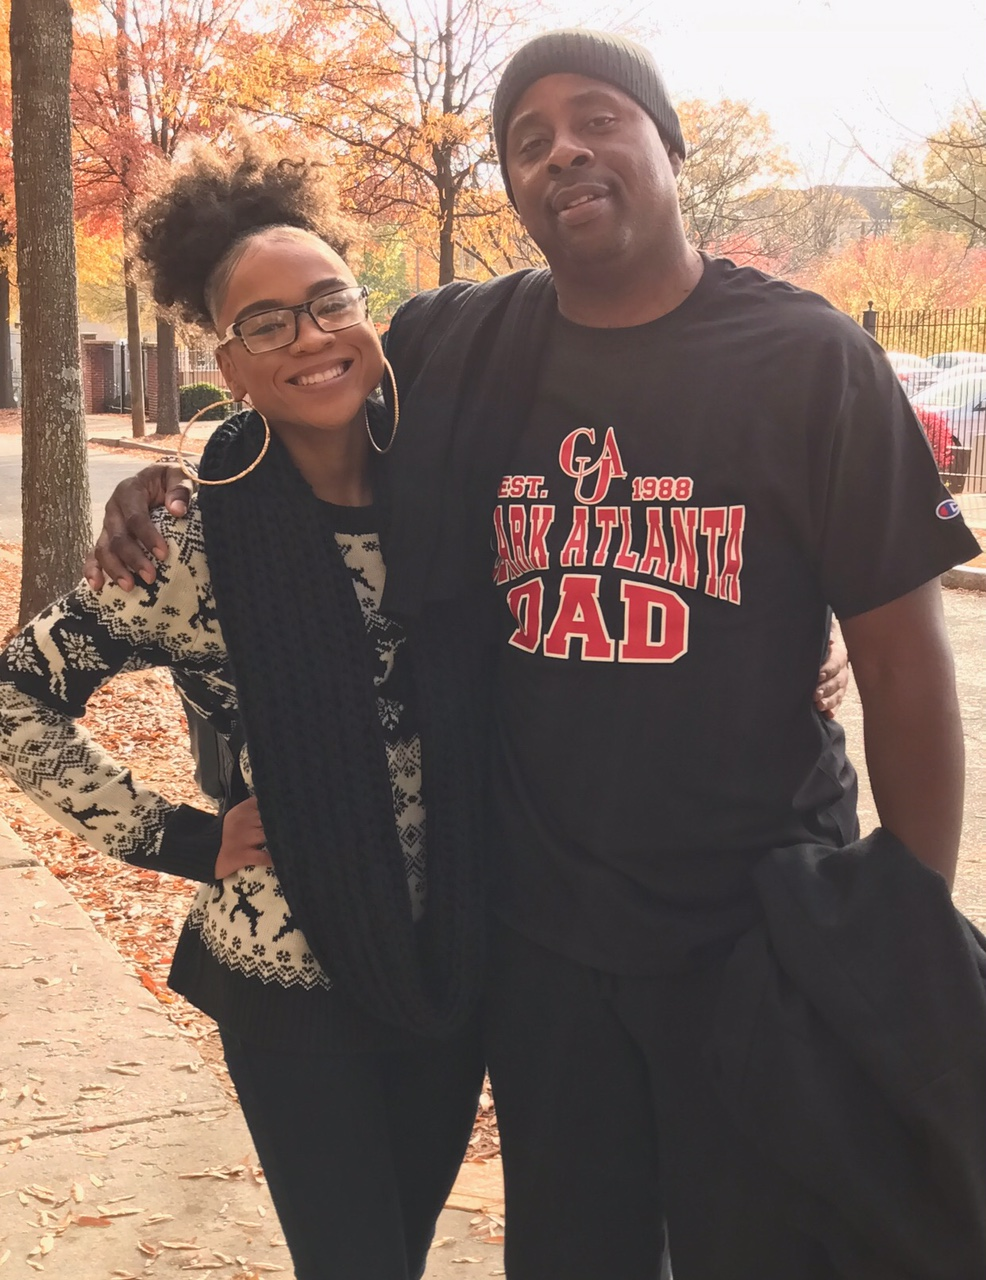 On our visit to Clark Atlanta University My Hubby Scored this t-shirt! Proud Dad!